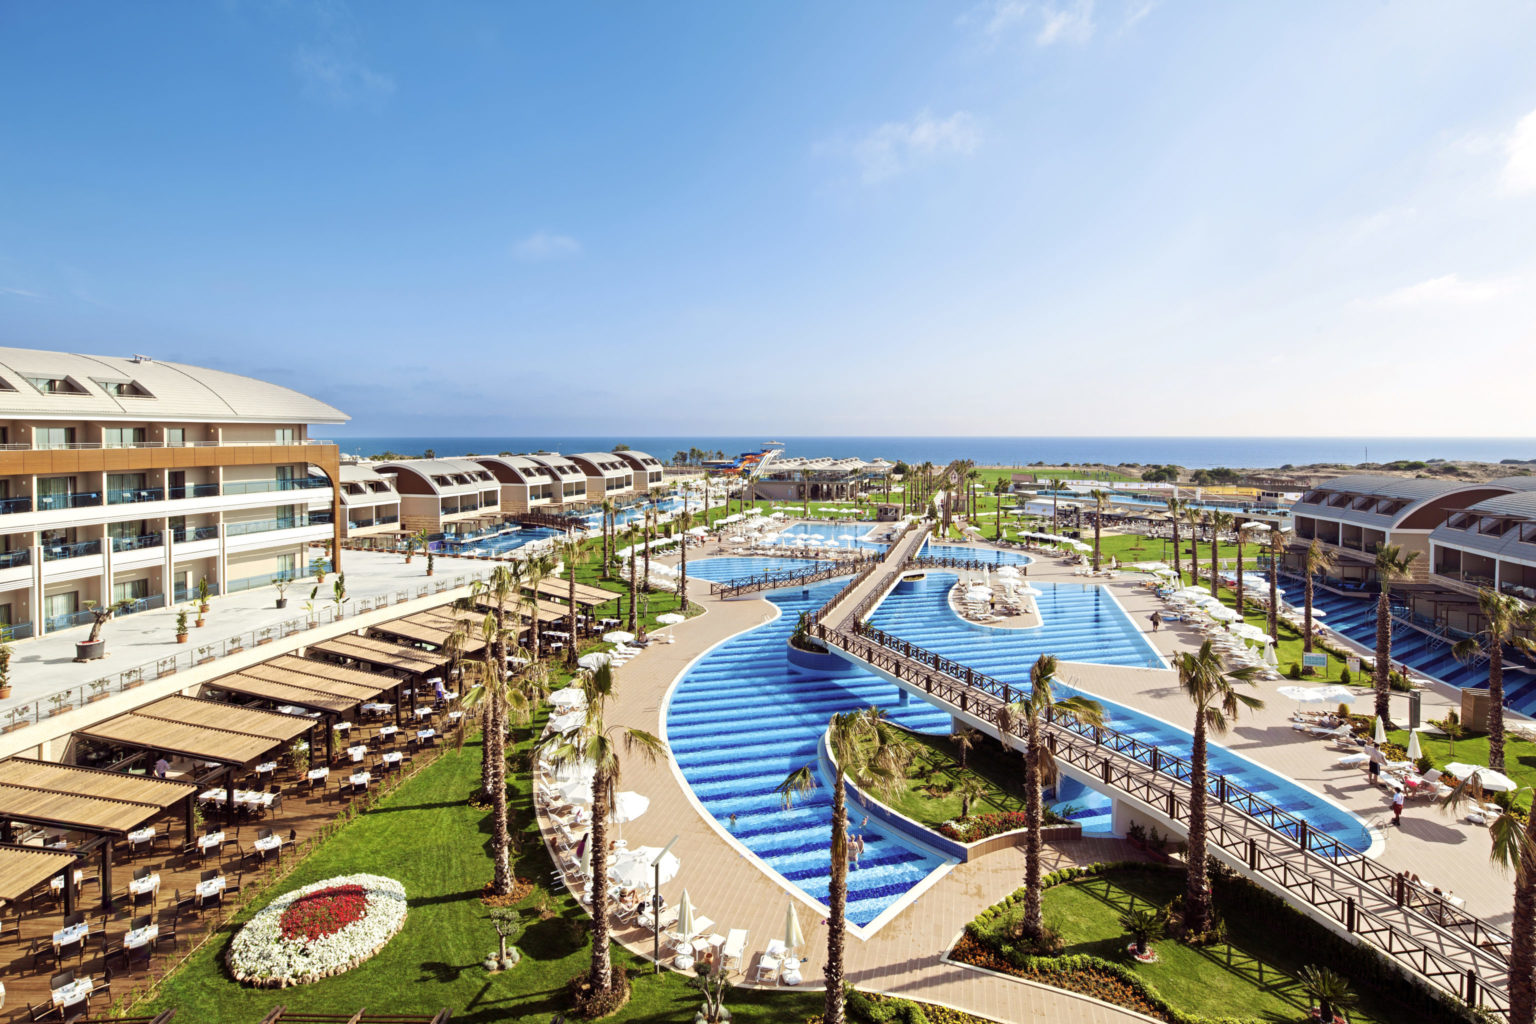 TUI, Magic Life, Jacaranda, resort, bookings, results, Thomas Cook, results, loss, first half, H1, comparison, interview, Joussen, CEO, Turkey, Spain, trends, travel